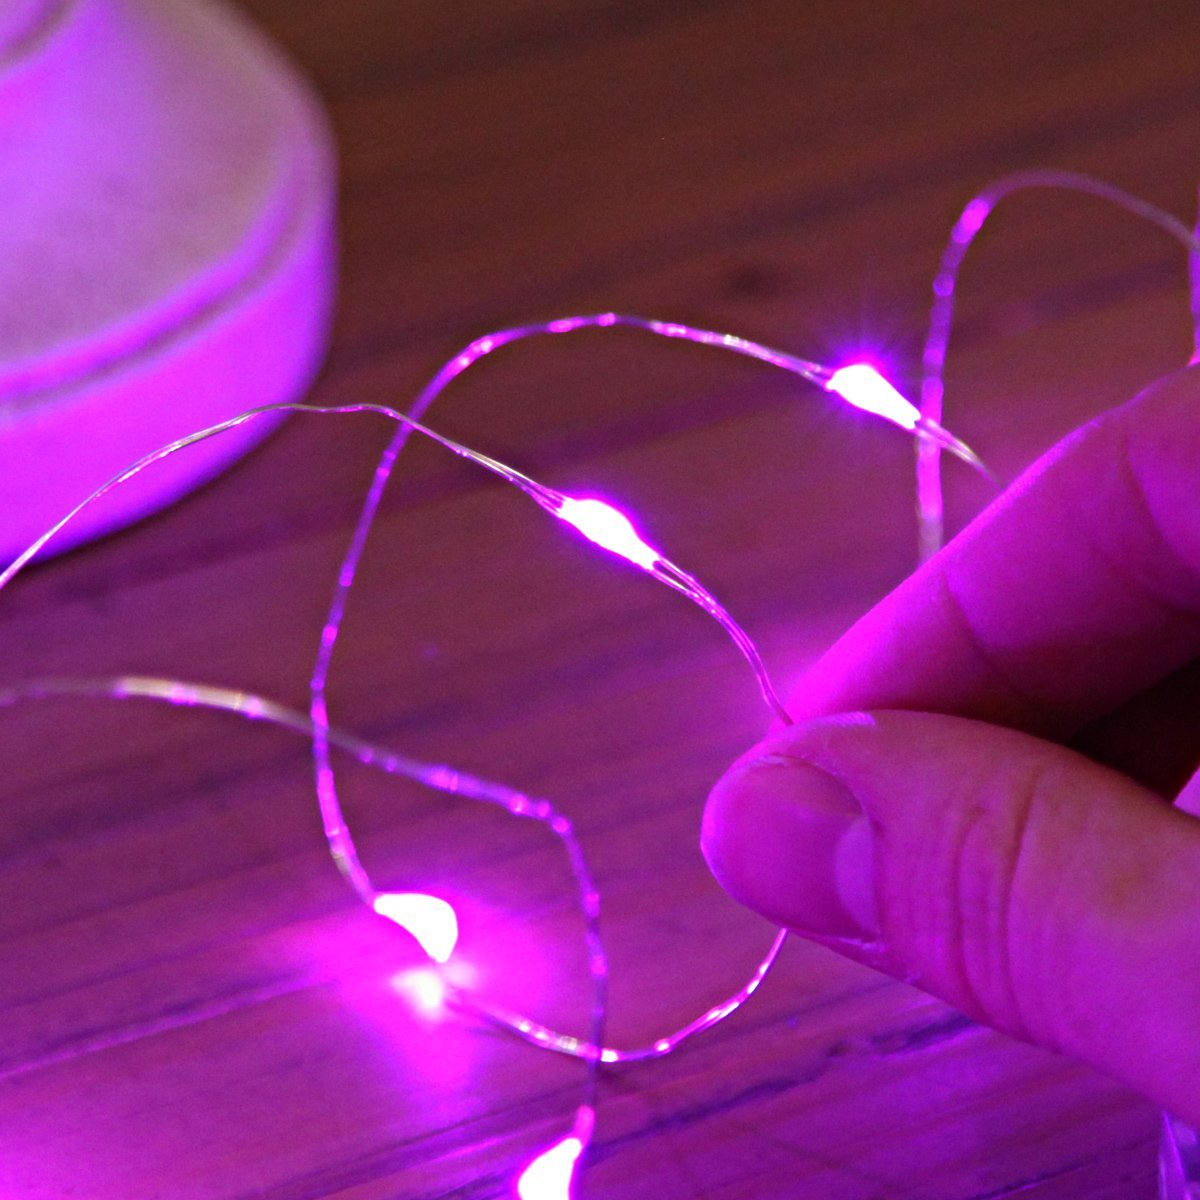 products strip play plug lights shop purple blue light strips underbody rc led our